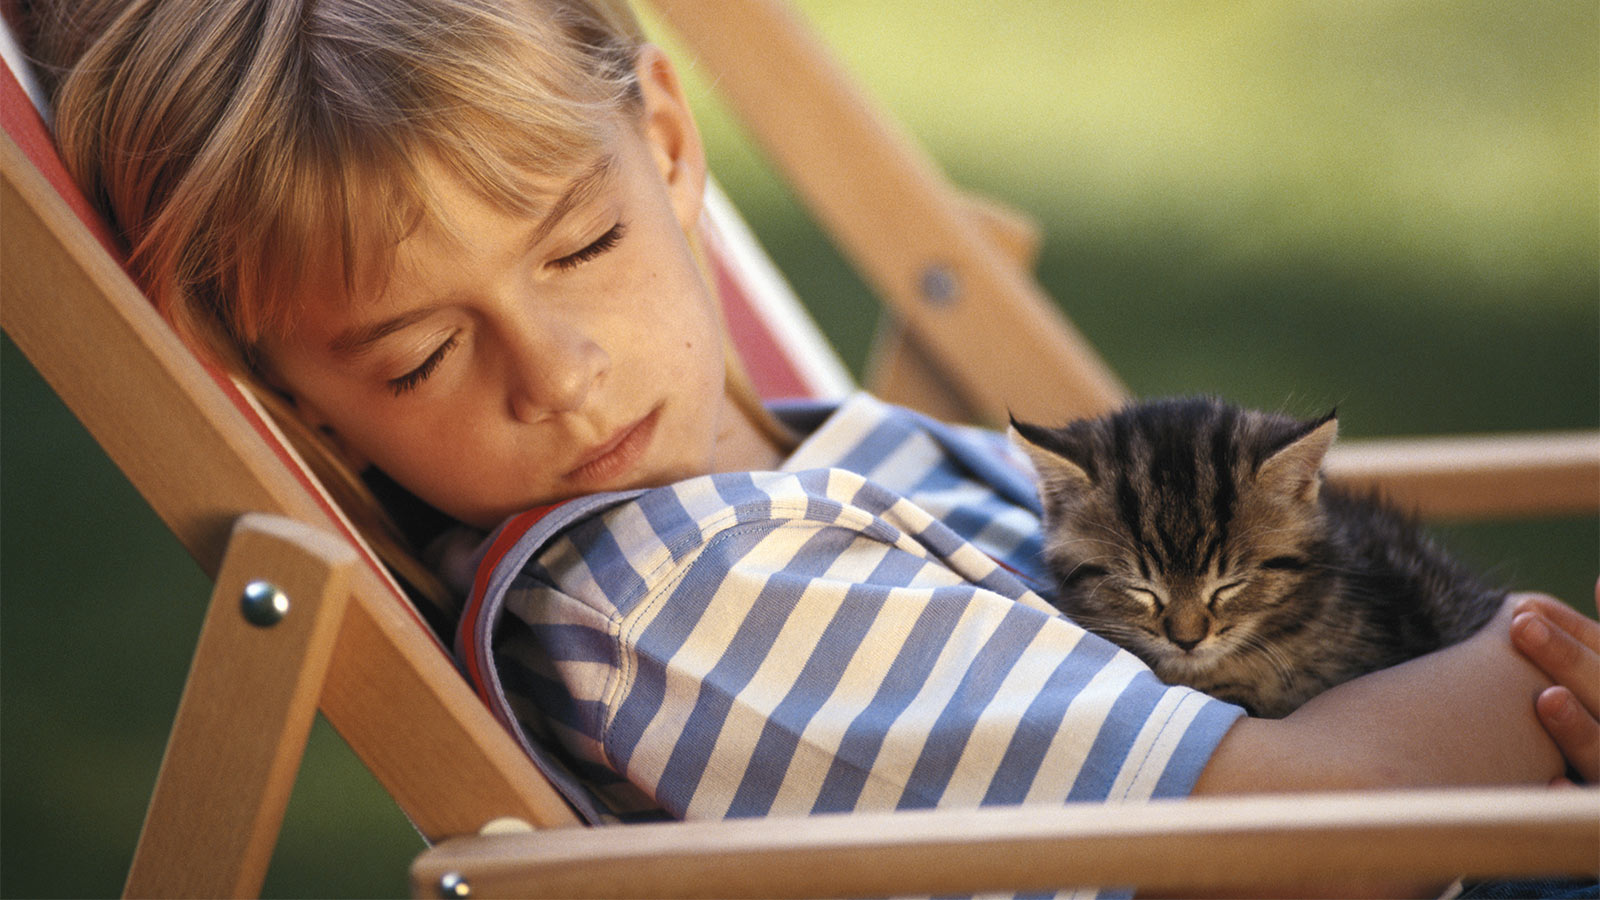 Girl napping on a lawn chair with her kitten.